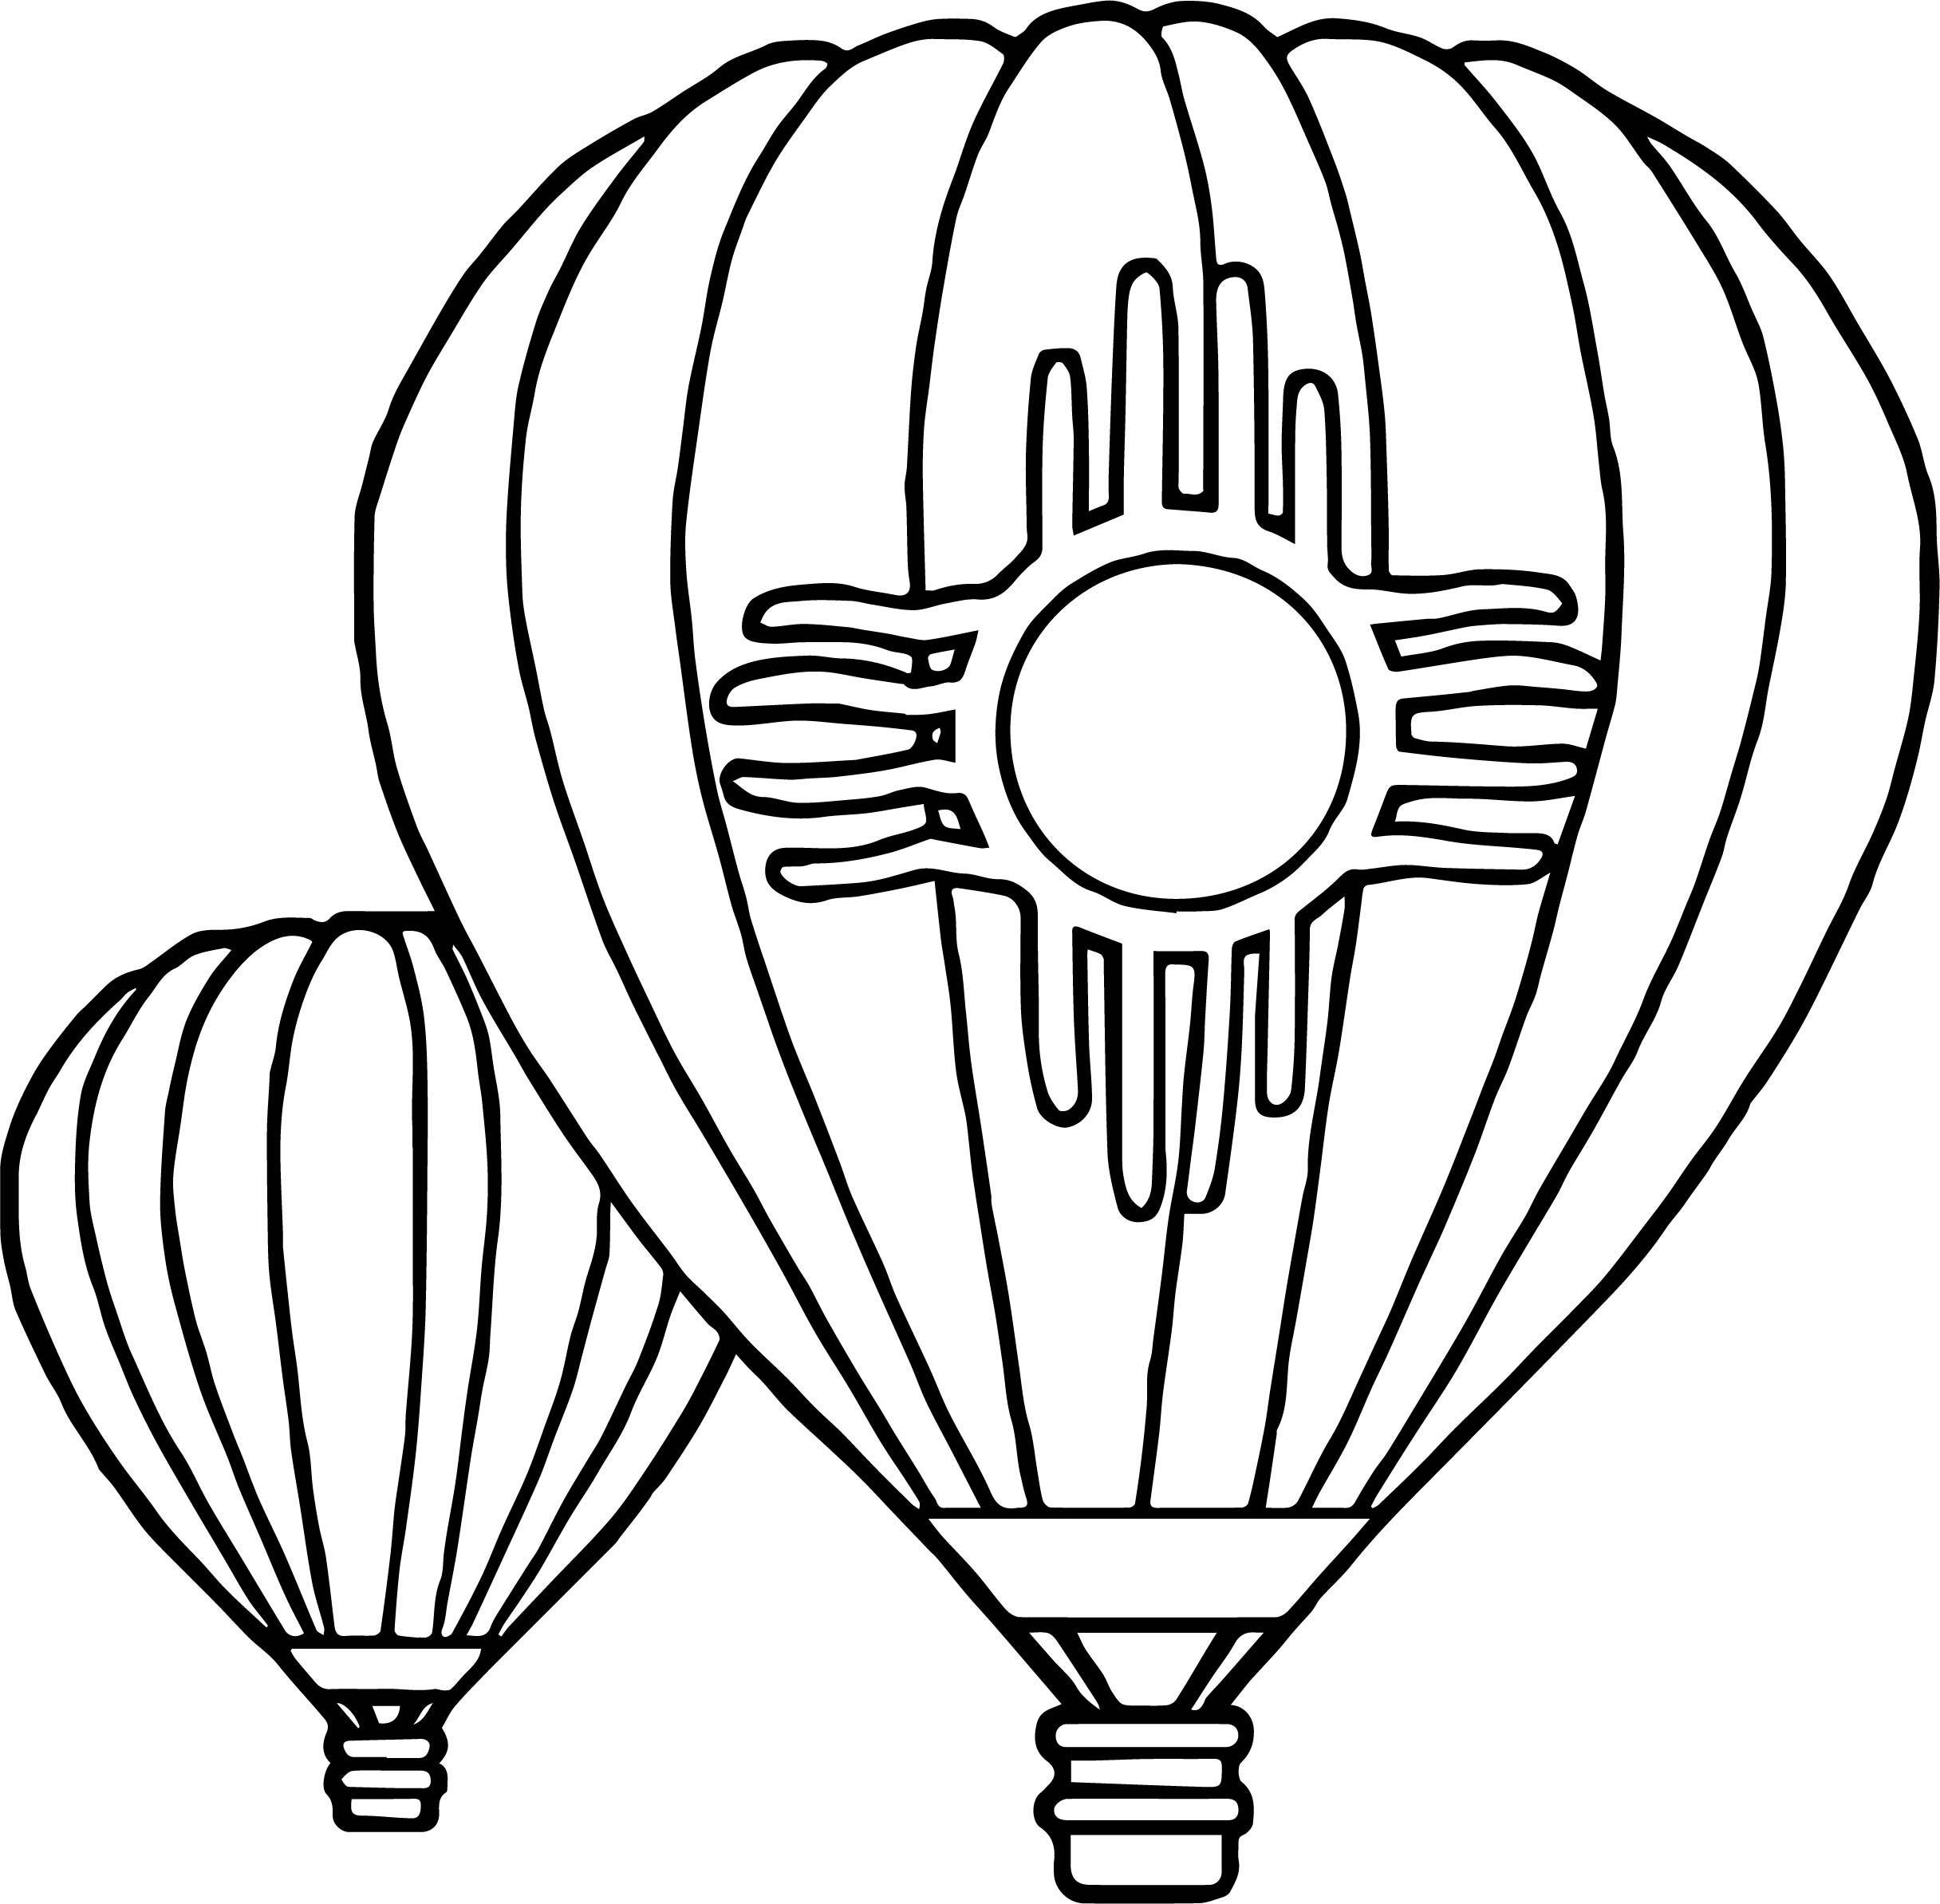 Balloon Color Page Download Free Coloring Books Download Of Hot Air Balloon Coloring Page Collection